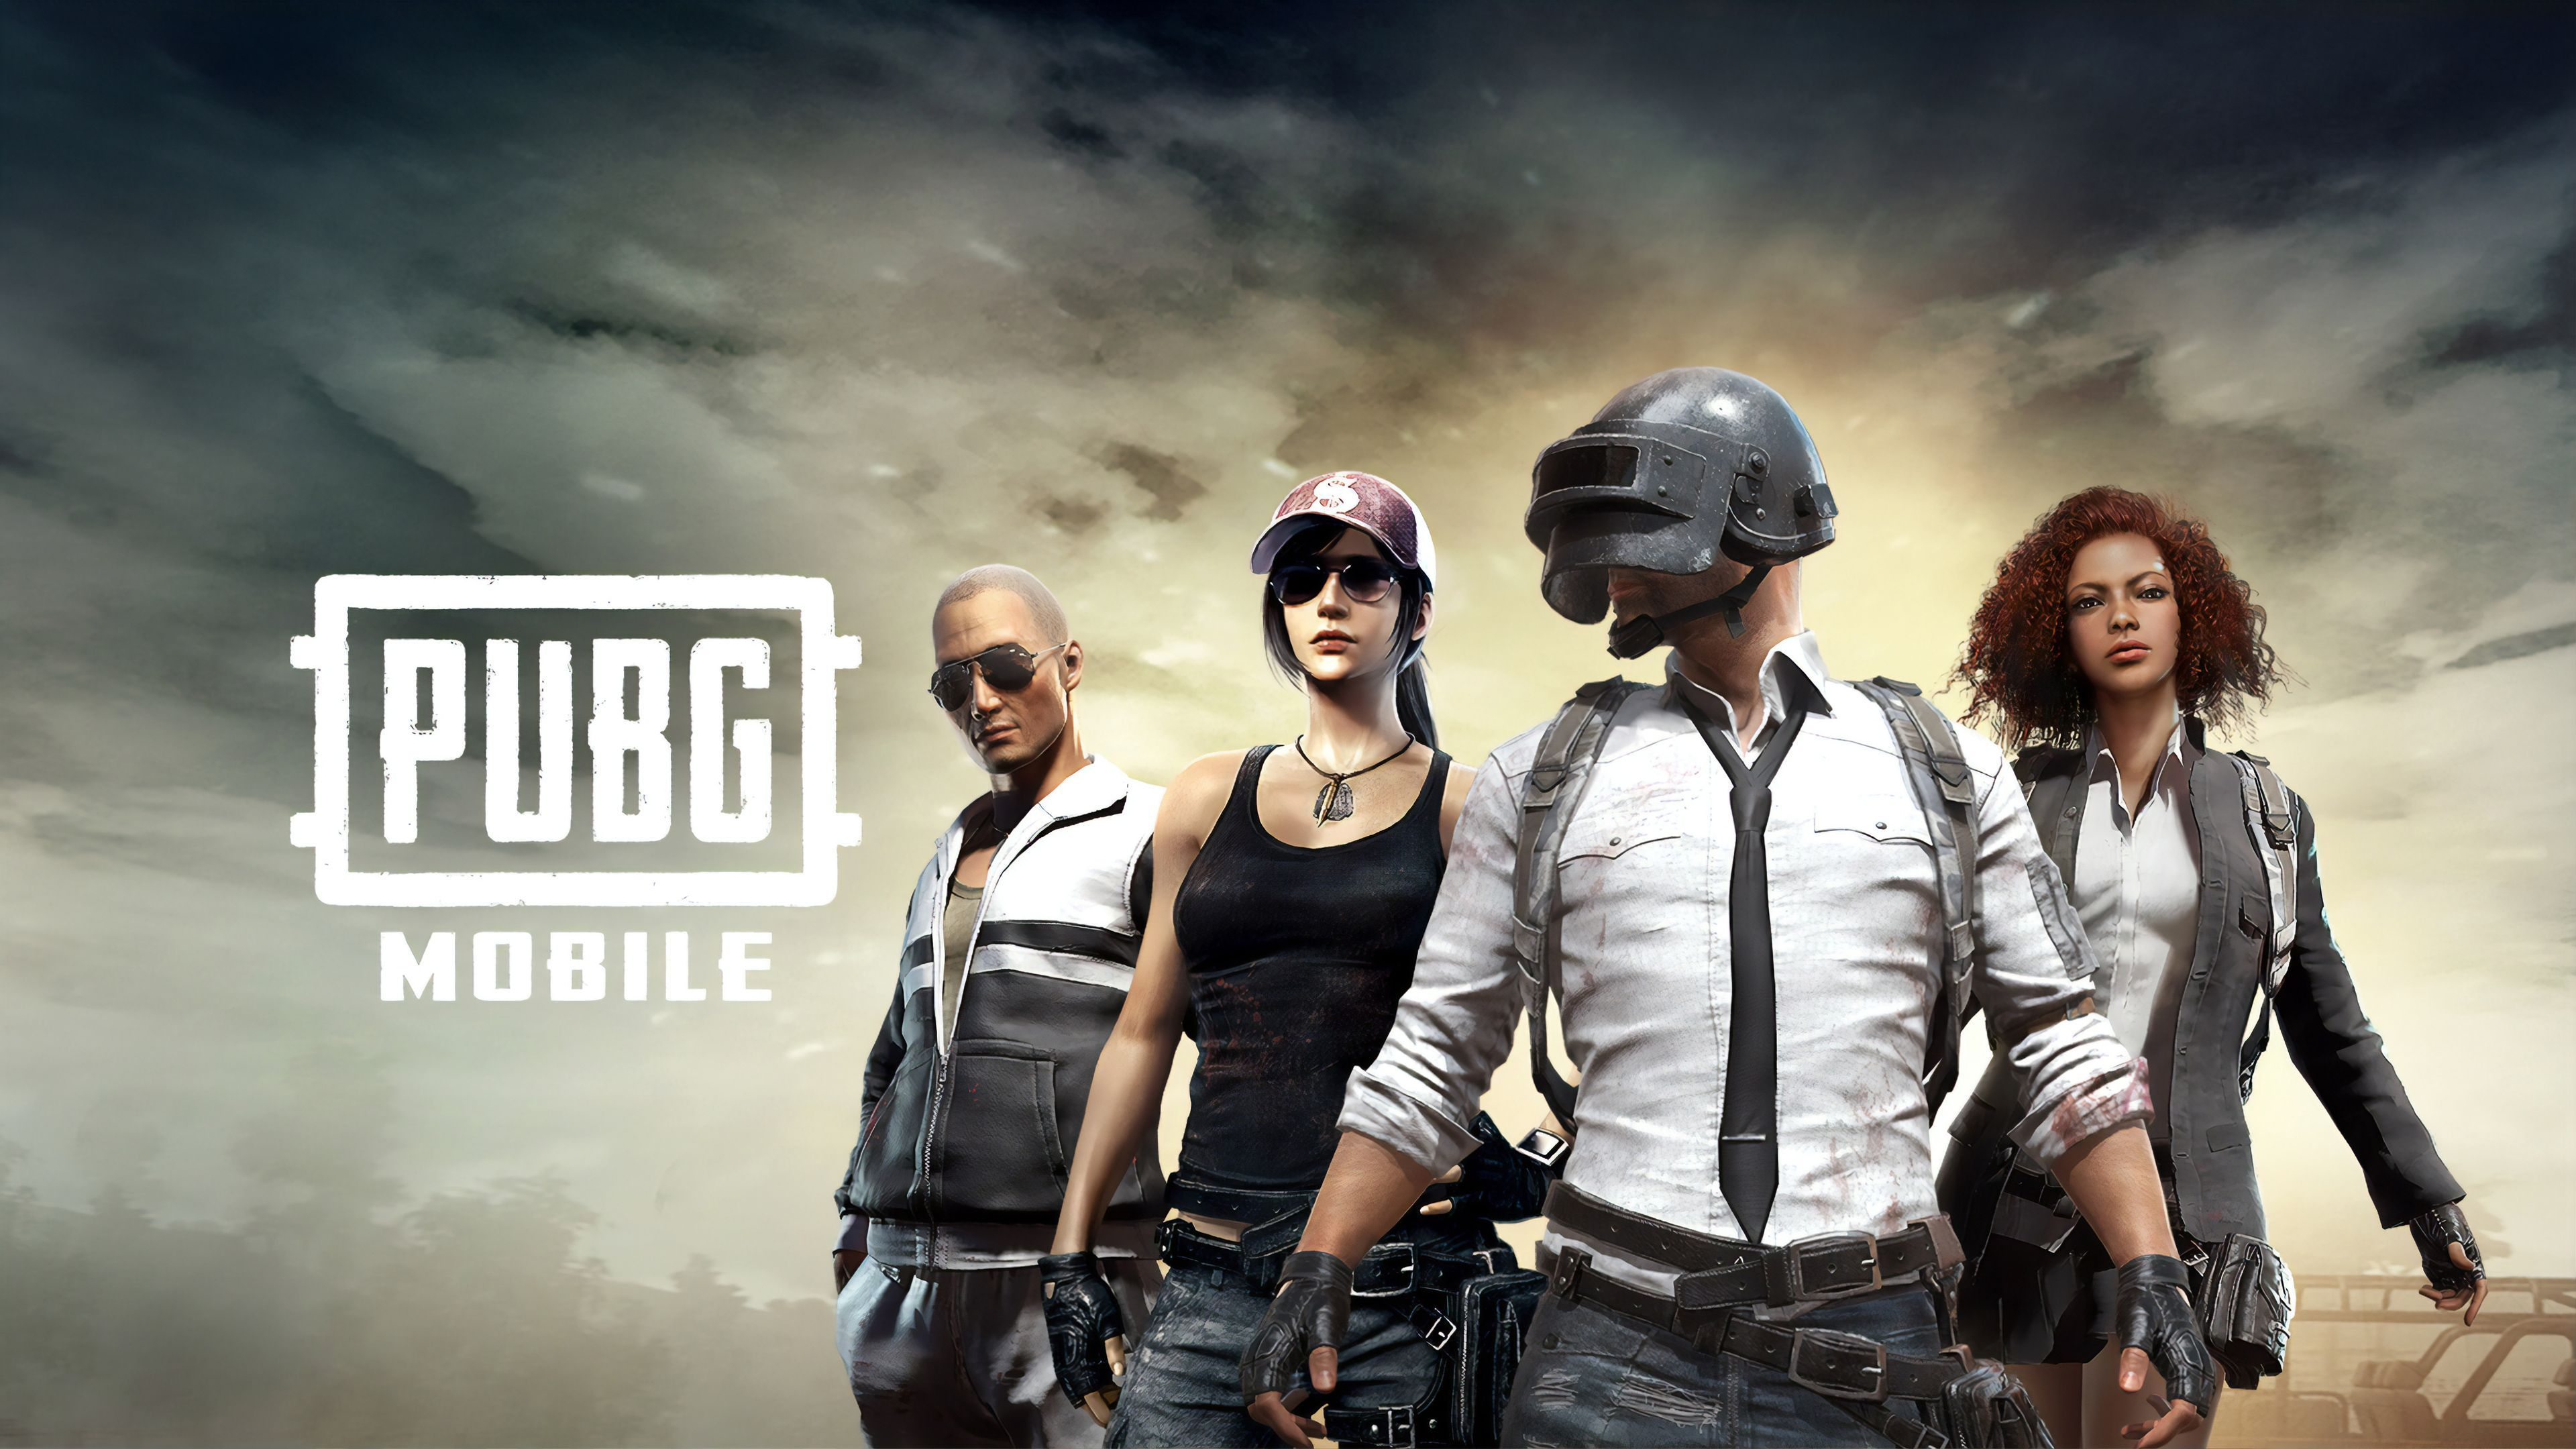 Pubg Mobile 4k Pubg Wallpapers Playerunknowns Battlegrounds Wallpapers Hd Wall Hd Wallpapers For Pc Wallpaper Pc Screen Wallpaper Hd